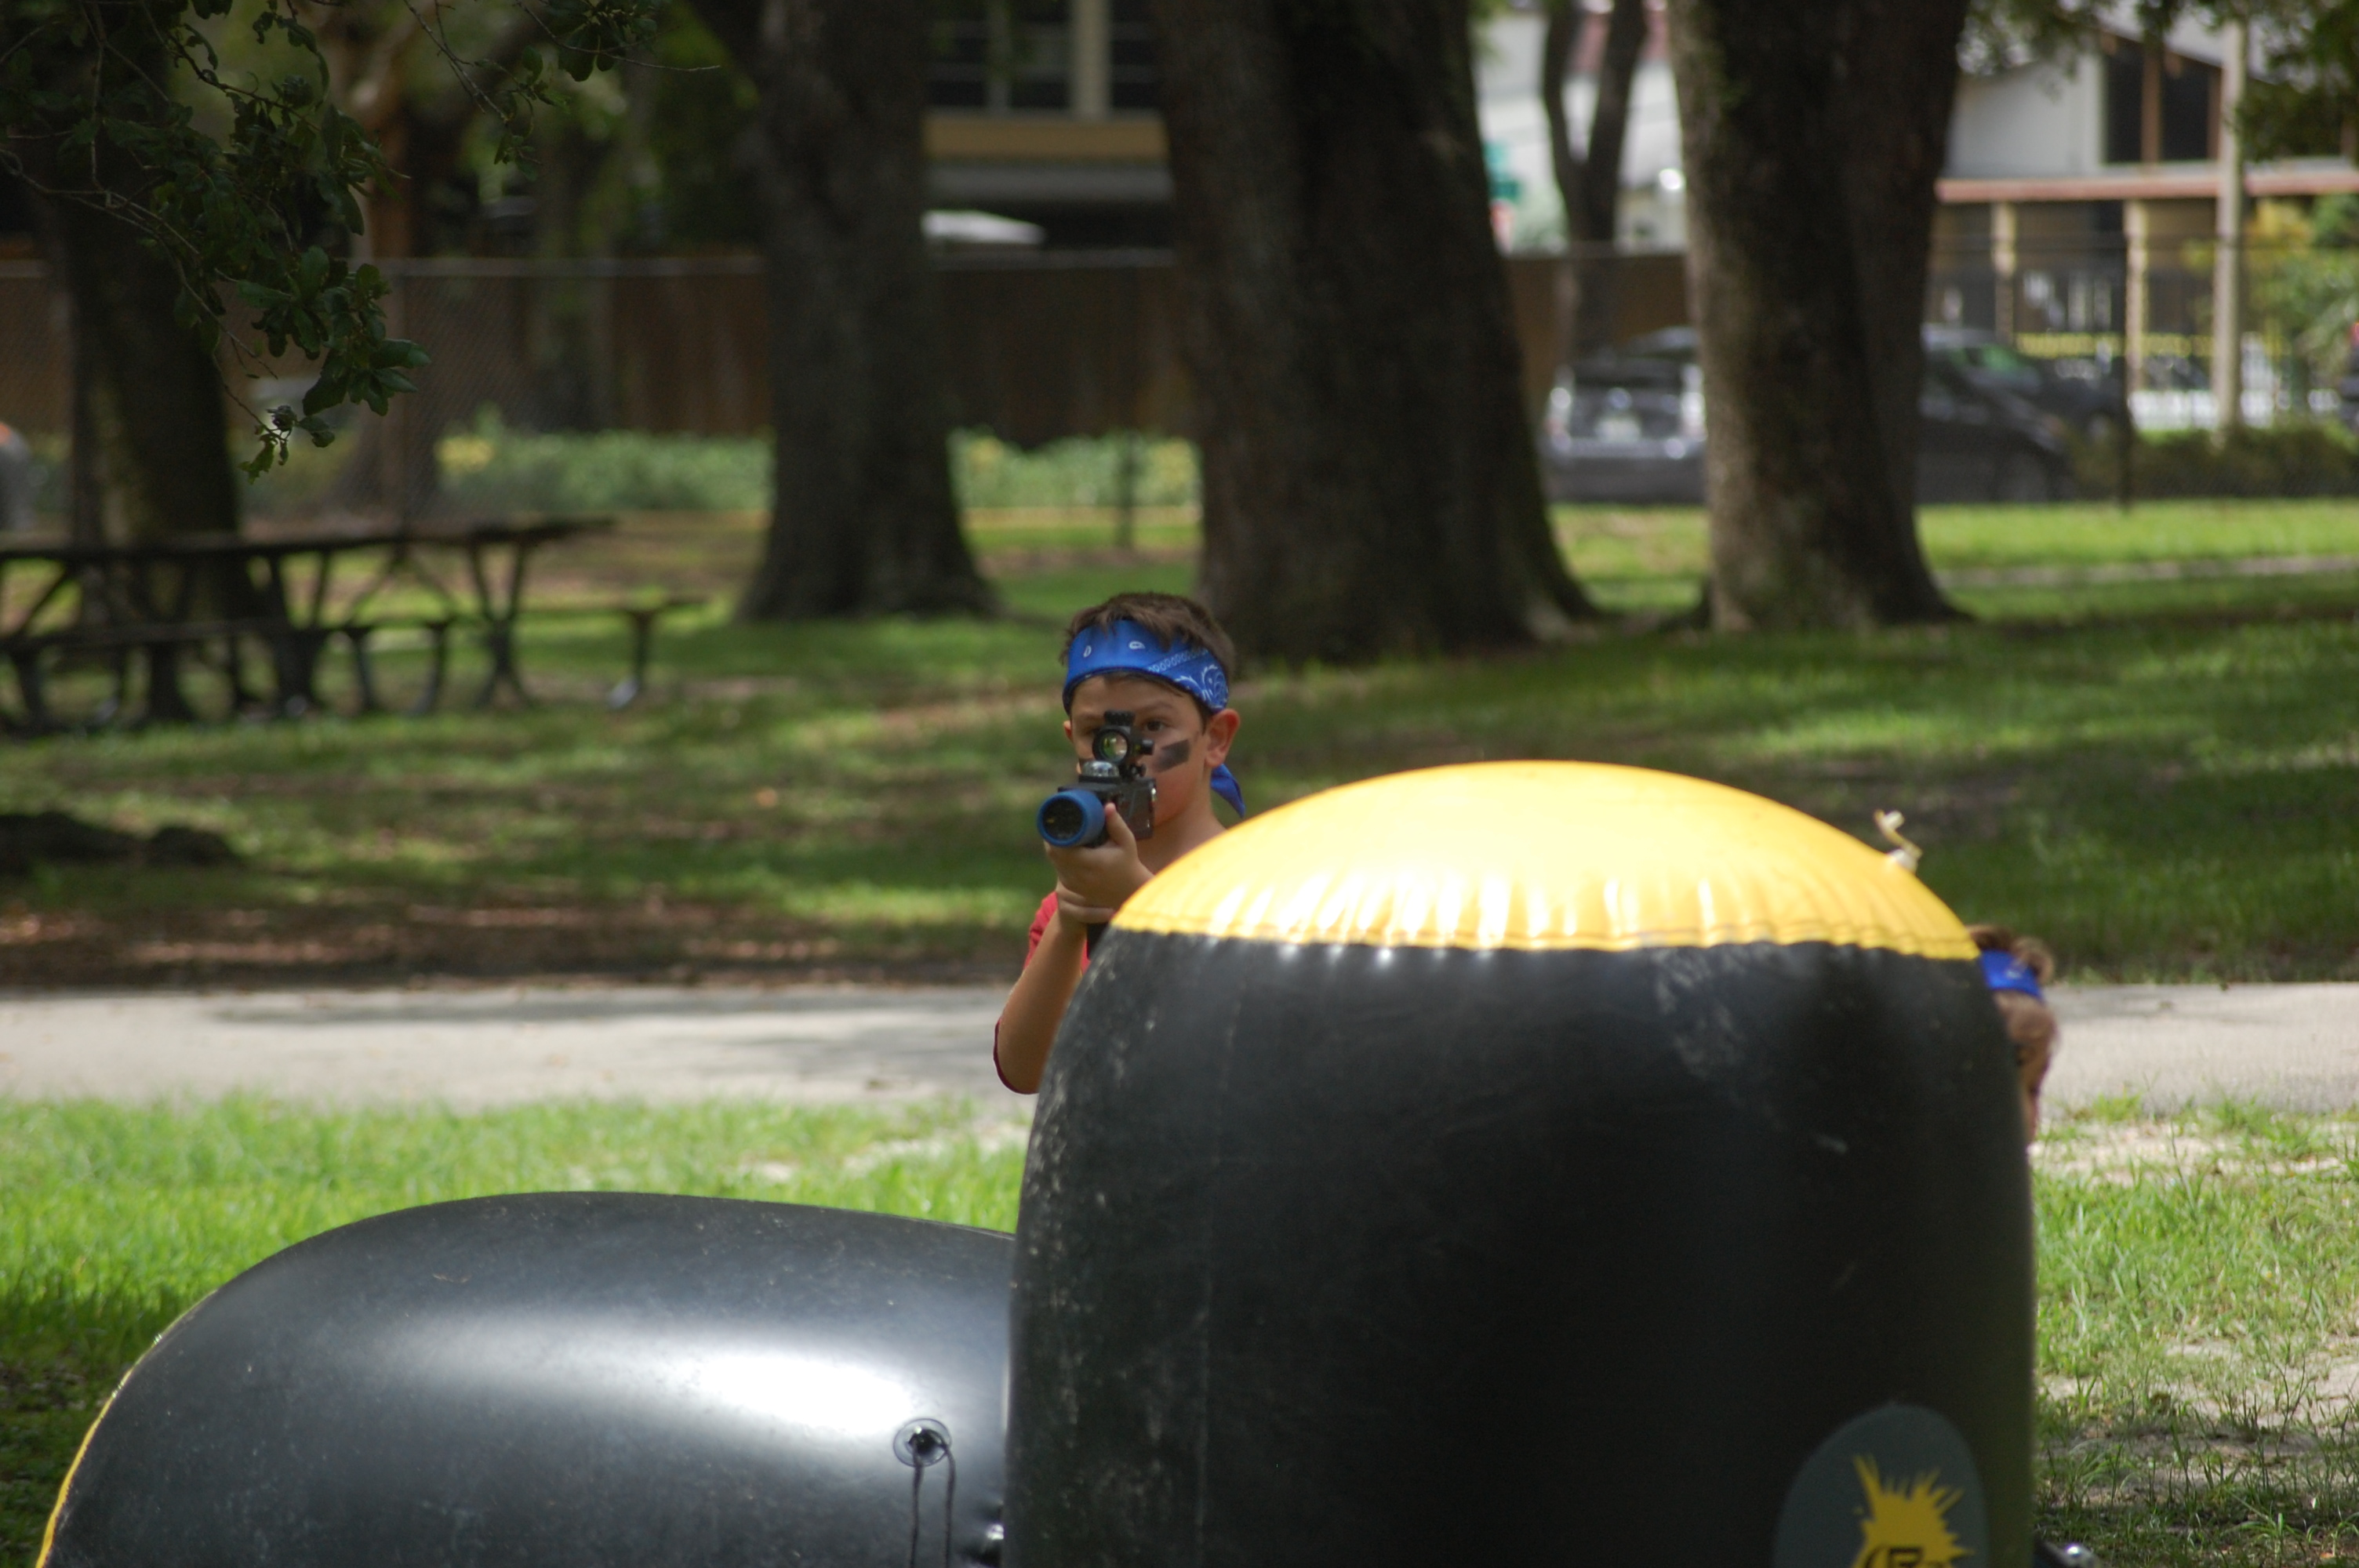 Mobile Laser Tag in Tampa, FL (4)